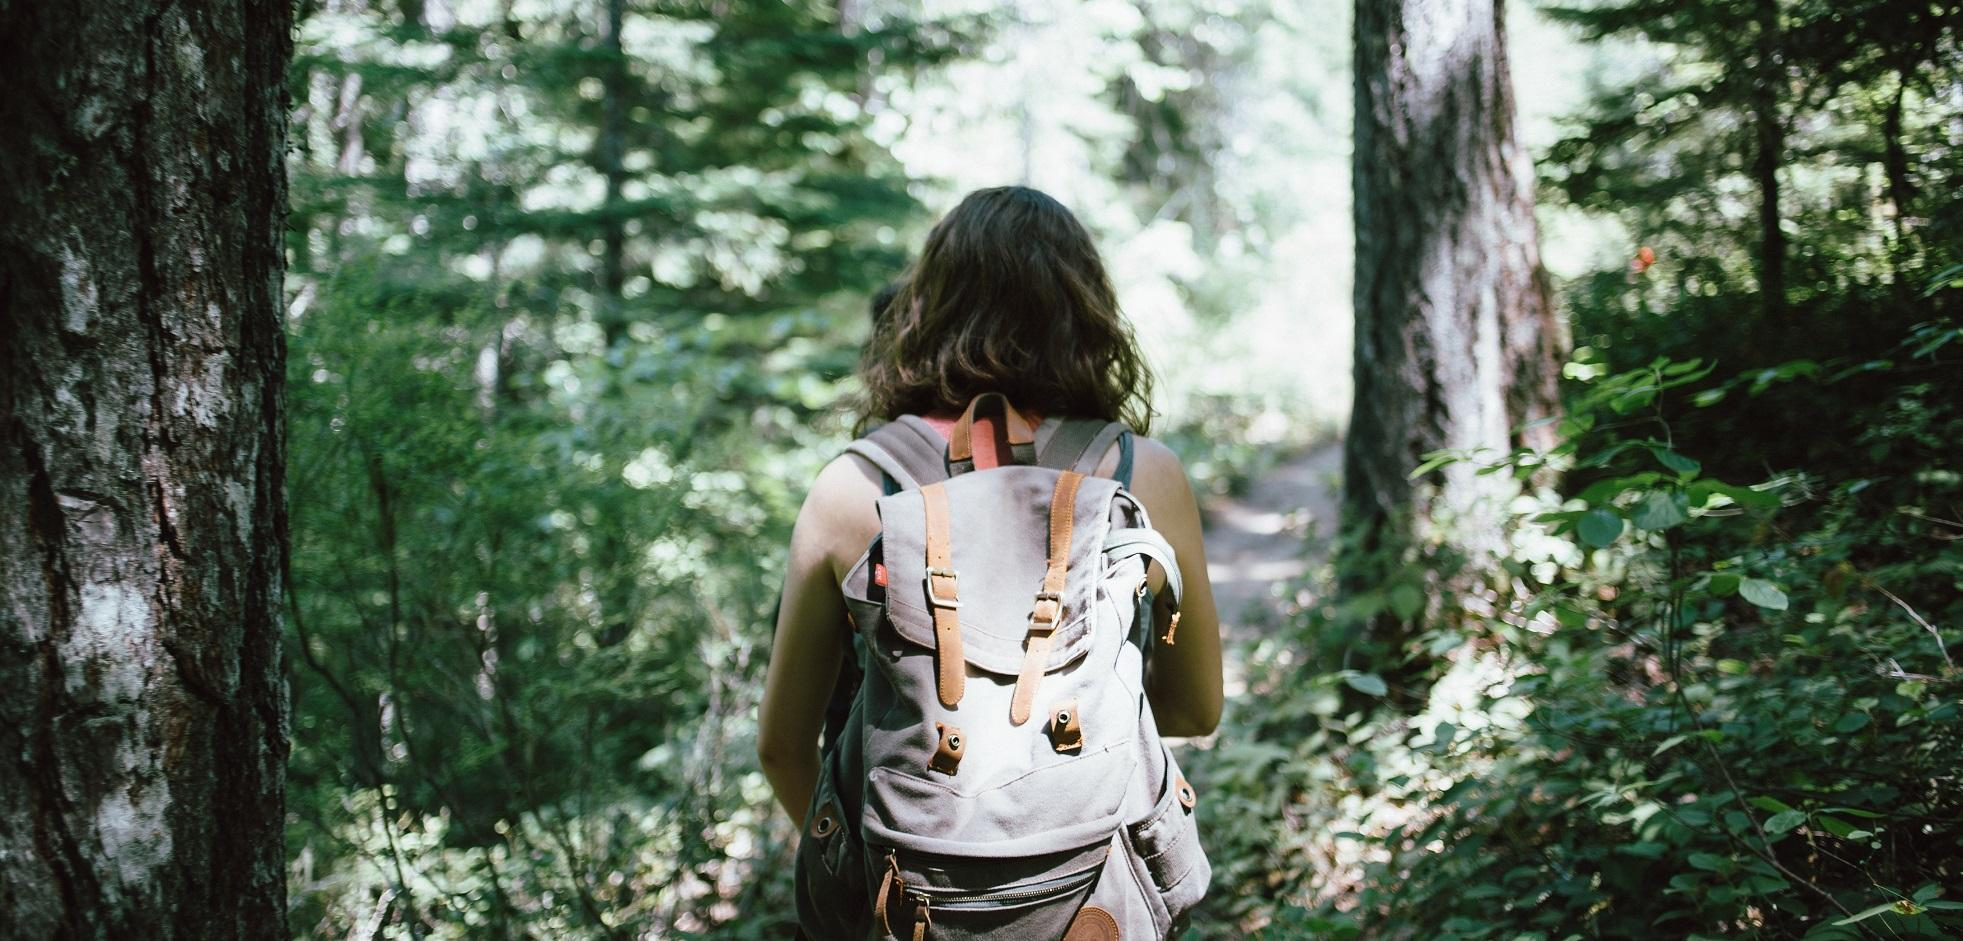 Female with a backpack hiking in a forest